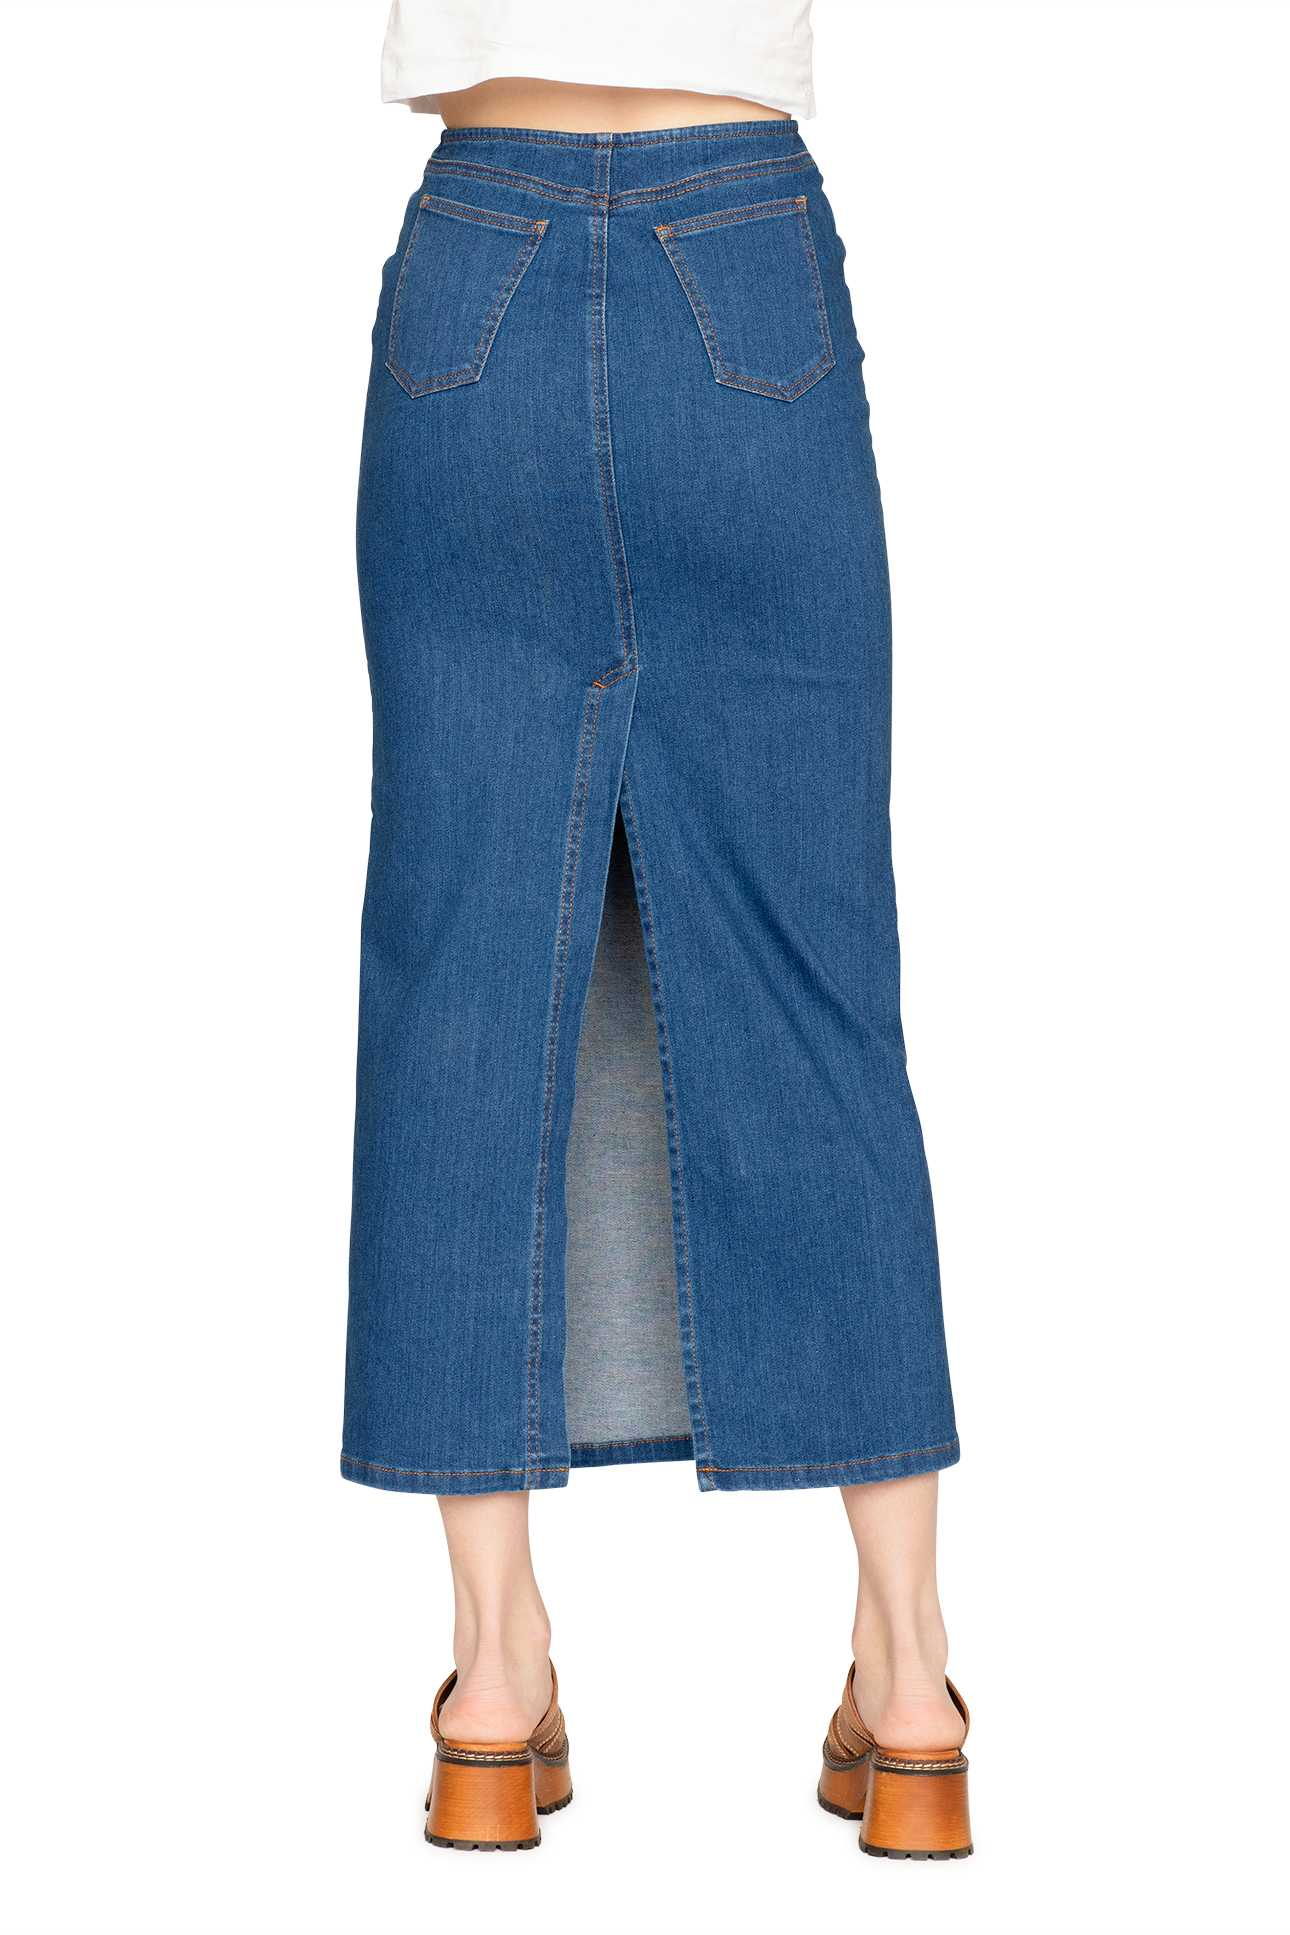 Long Skirt Denim Mid Blue Wash